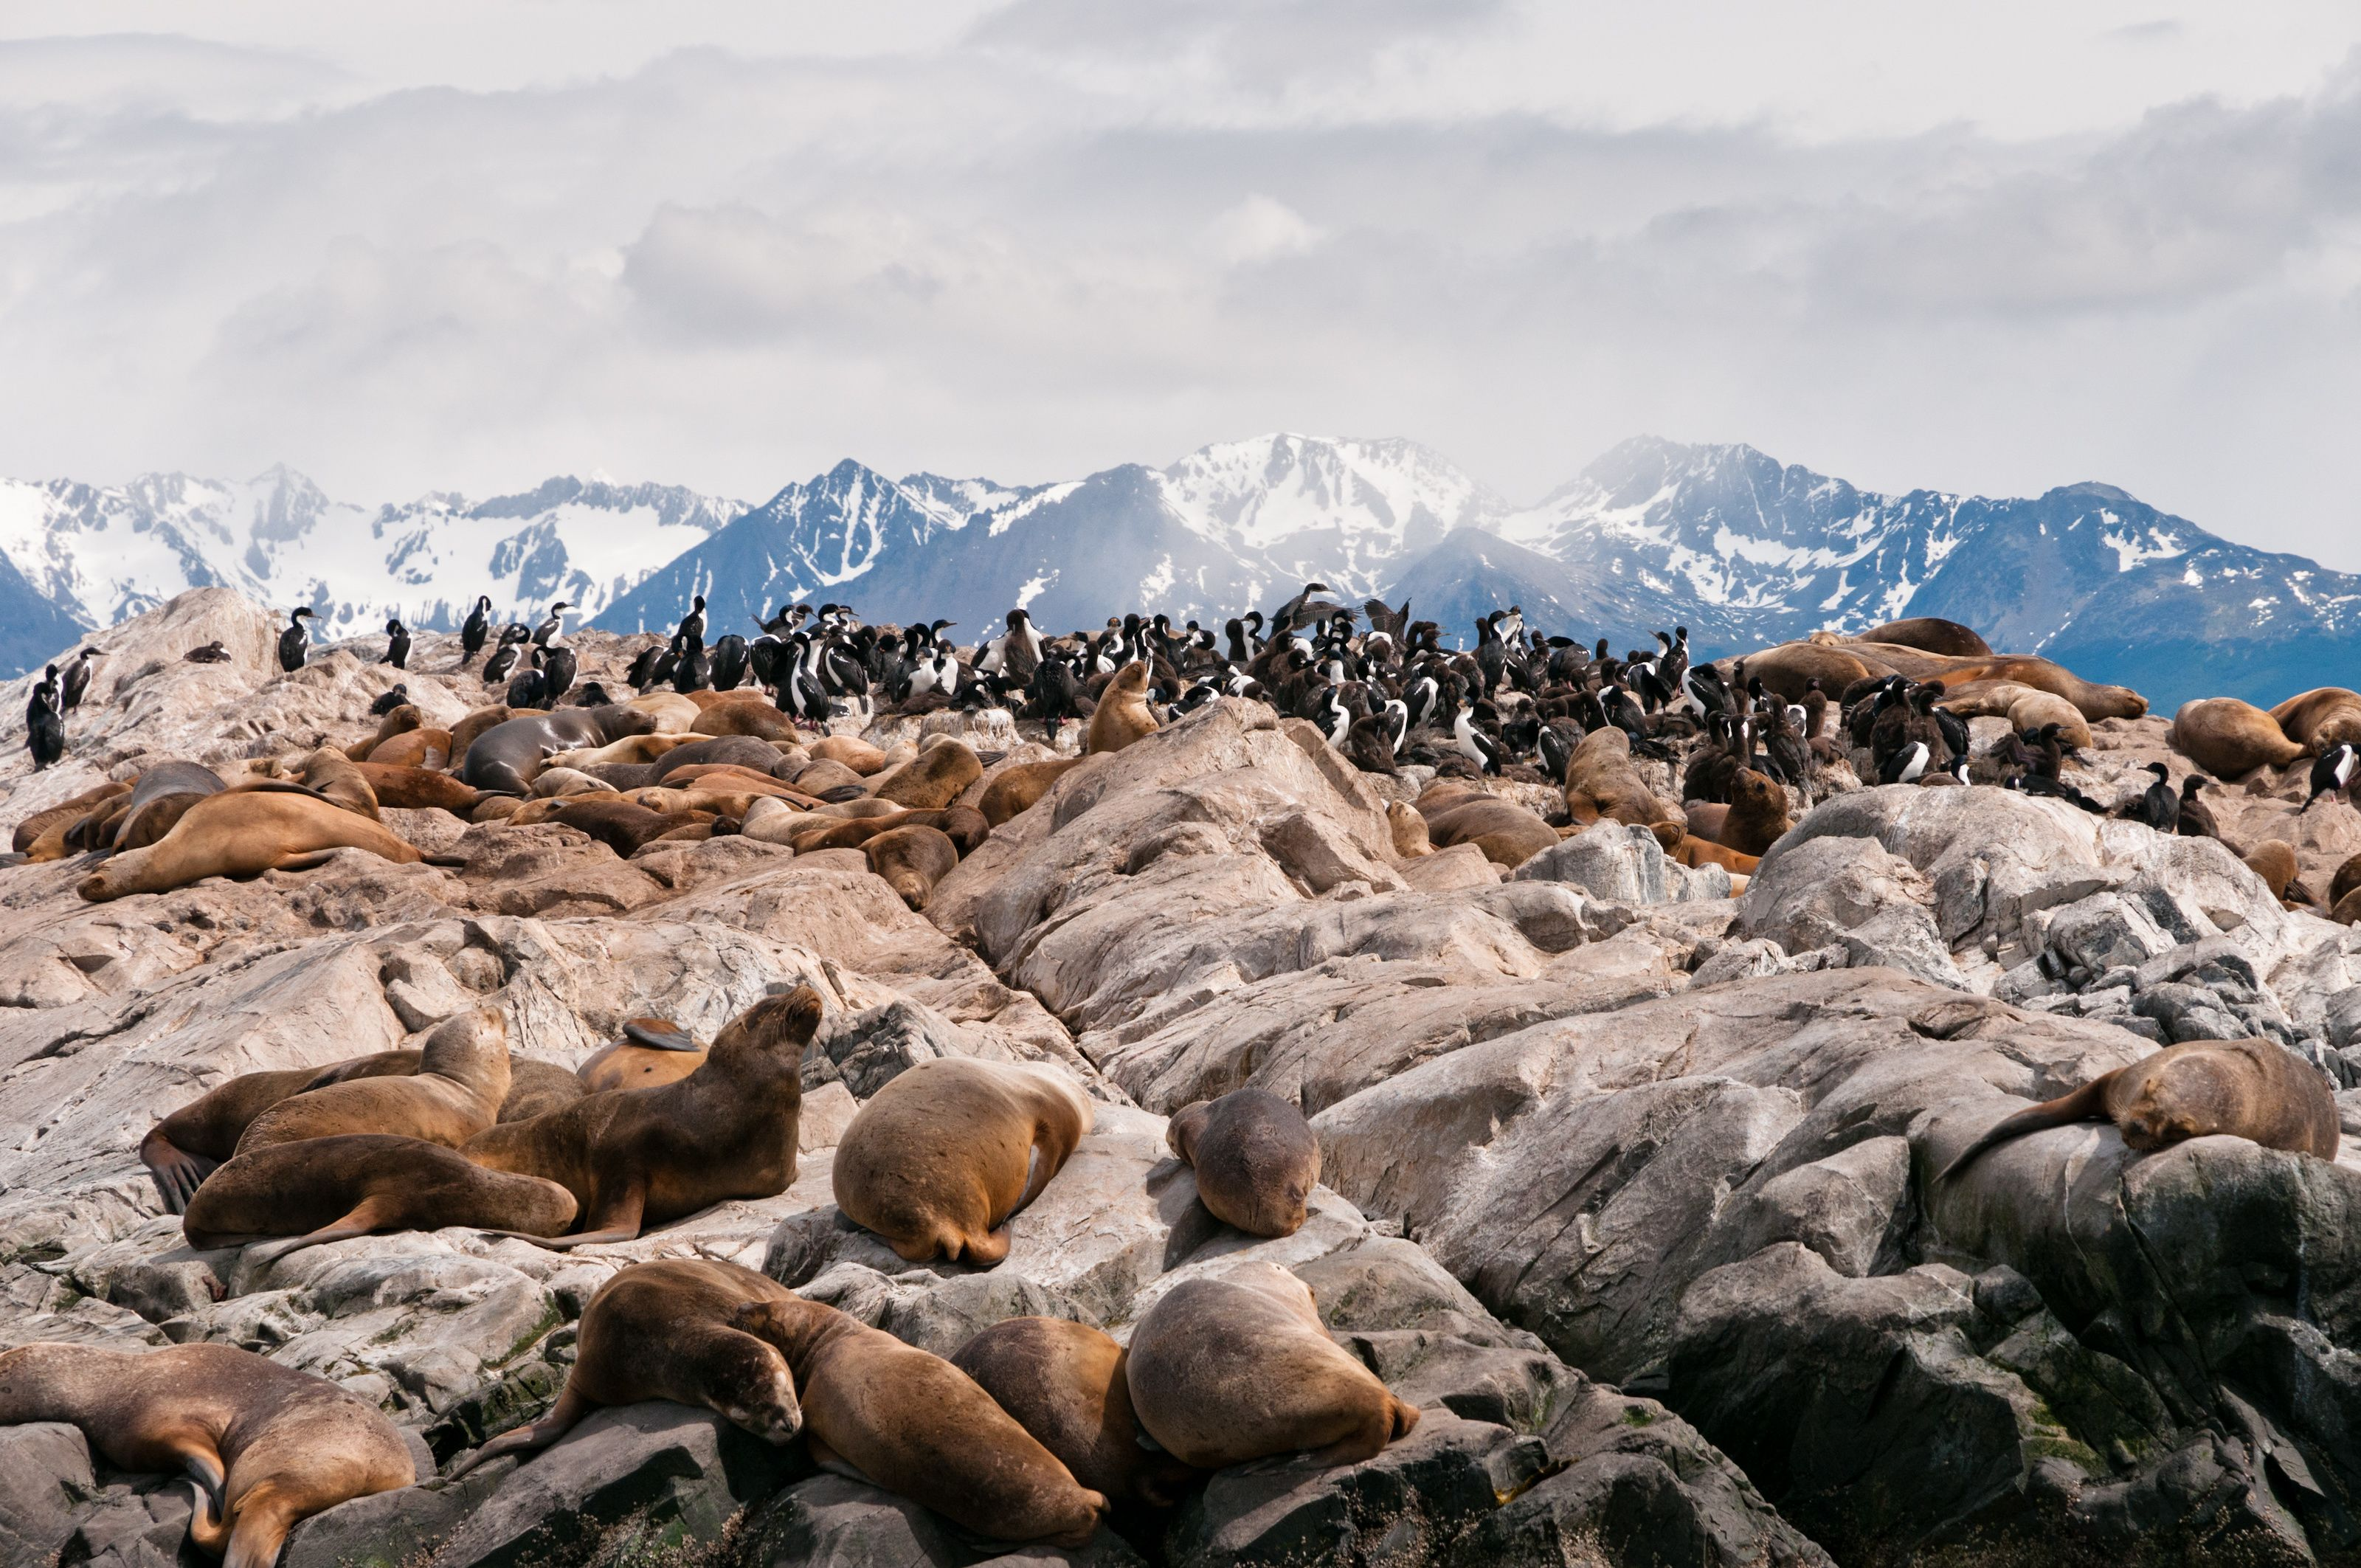 Beagle Channel Boat Tour with Sea Lions Island